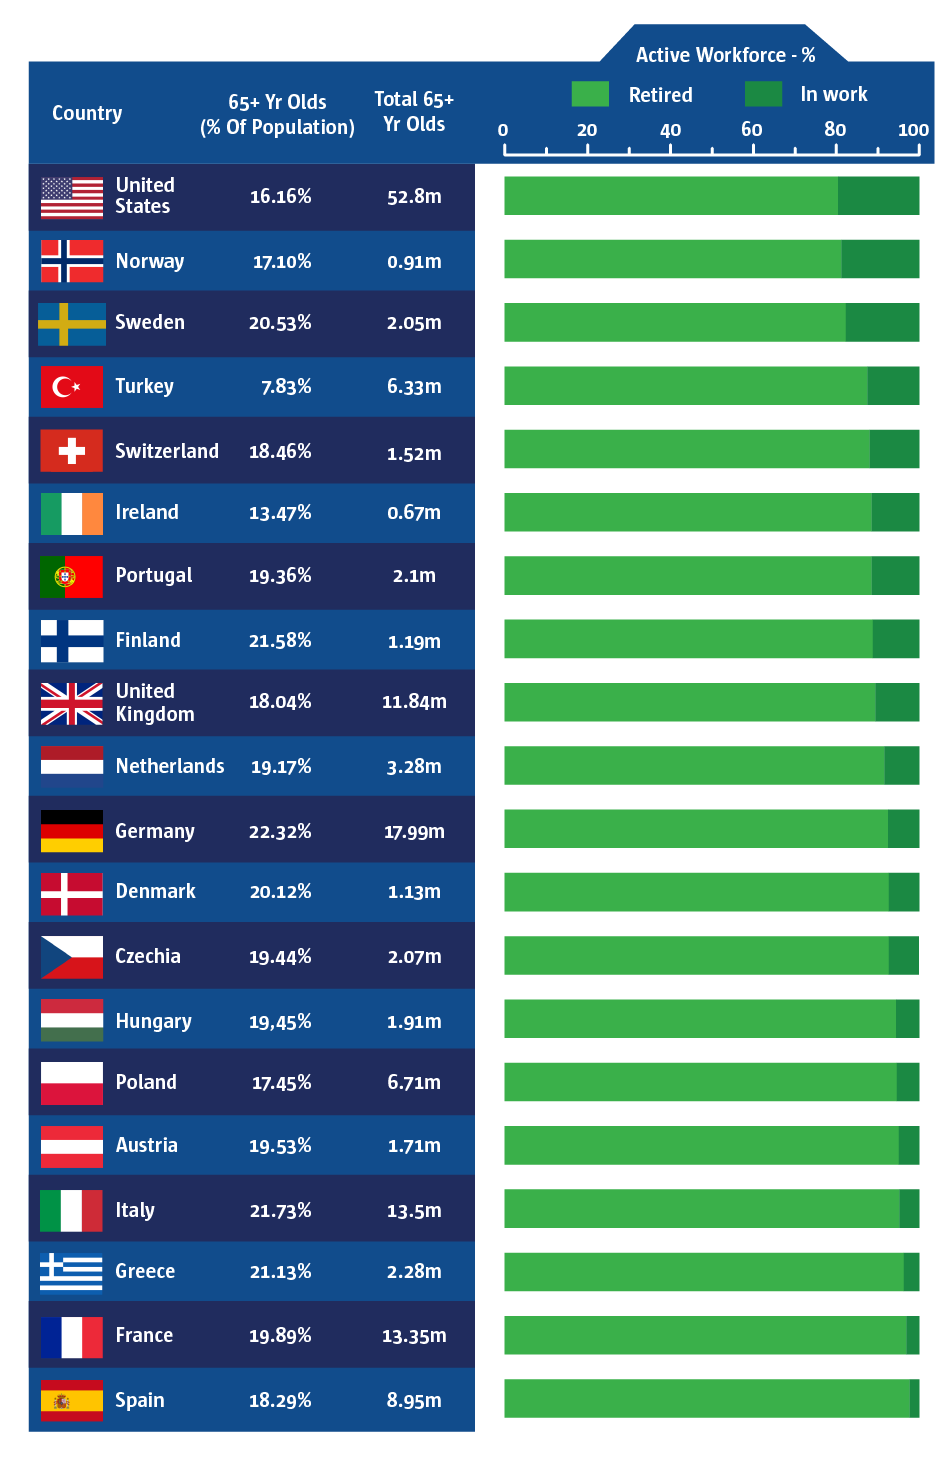 An infographic to show the United States and Norway have the largest proportion of retired individuals.